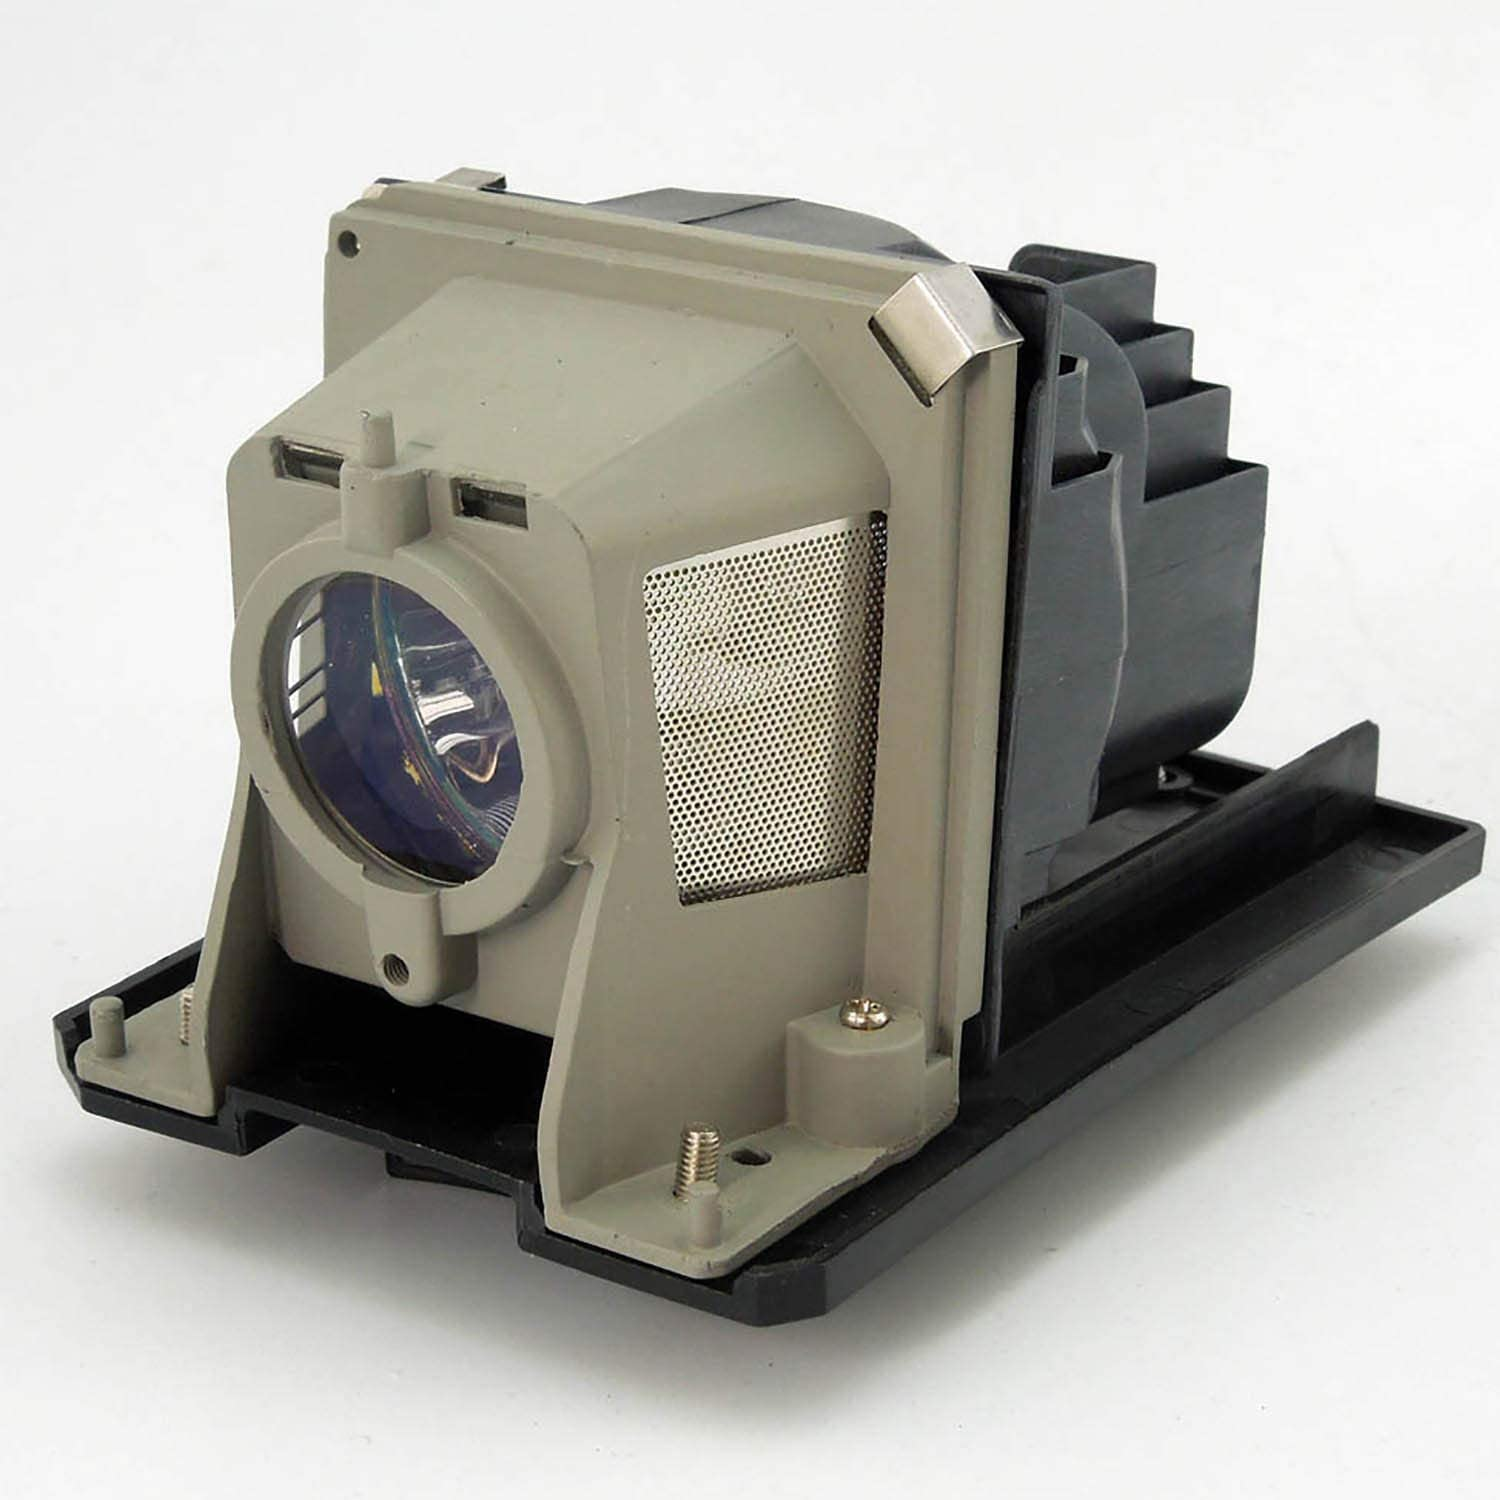 NP210 Top Lamp NP13LP NP115G3D NP115 NP216 NP215 V230X 60002853 Replacement Projector Lamp for NEC NP110